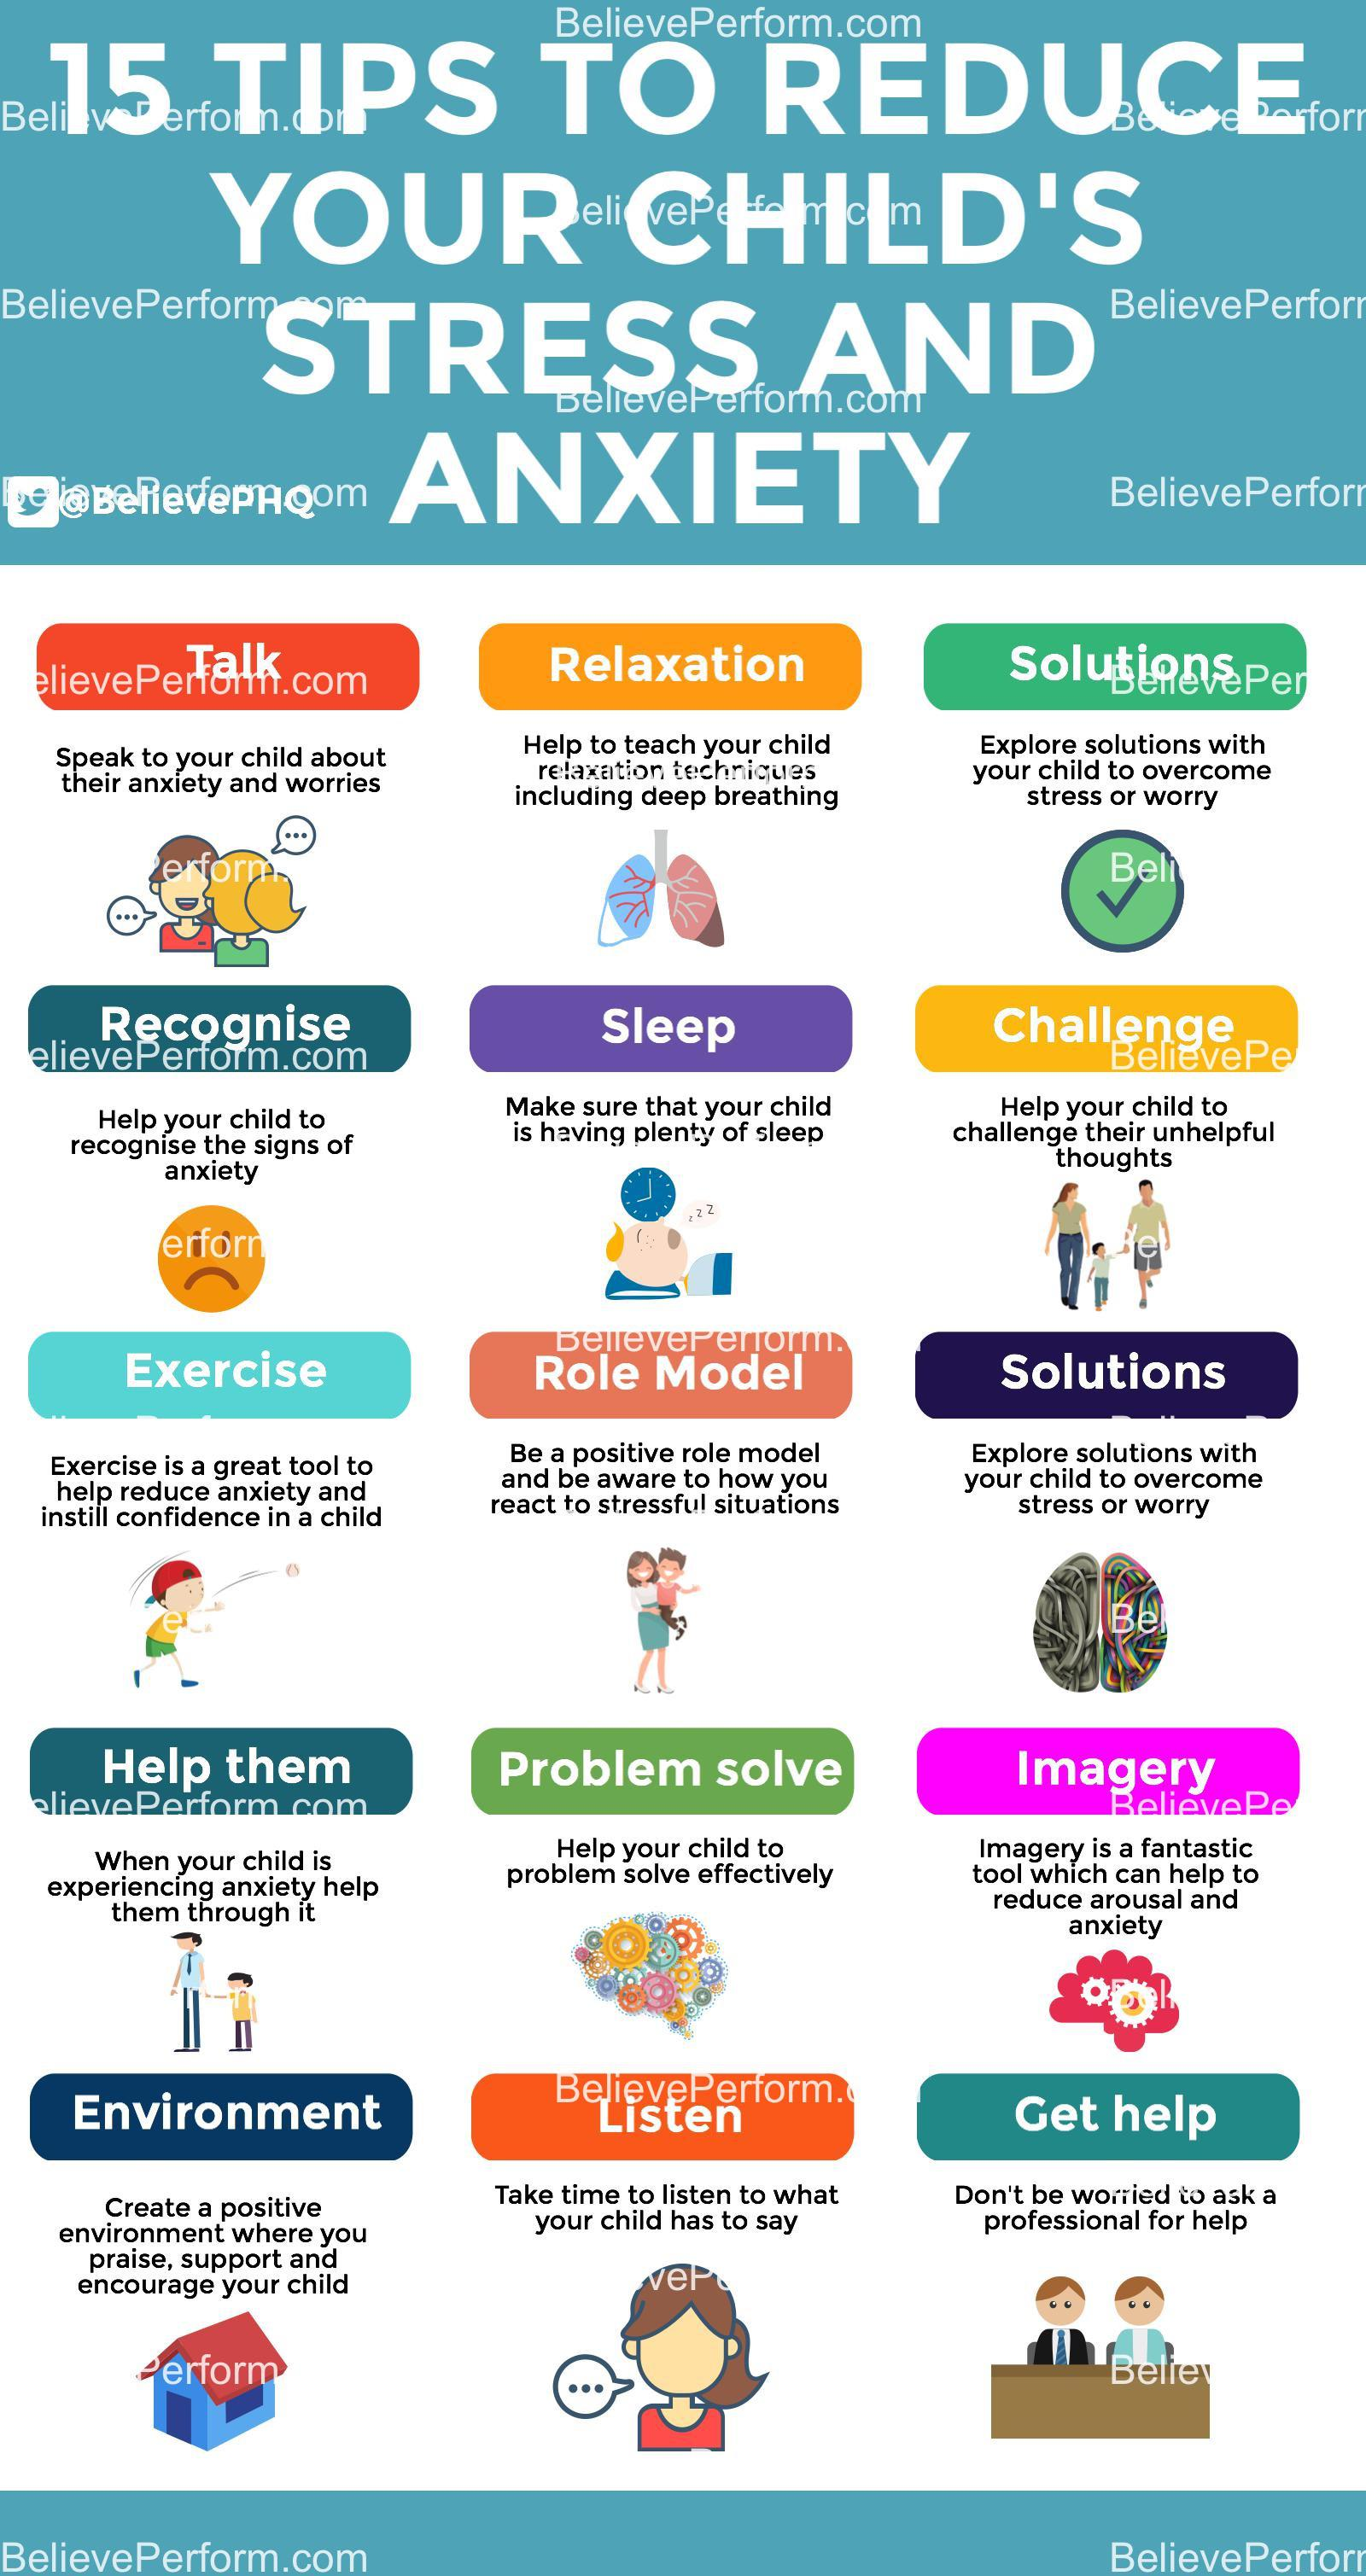 15 tips to reduce your childs stress and anxiety - The UK